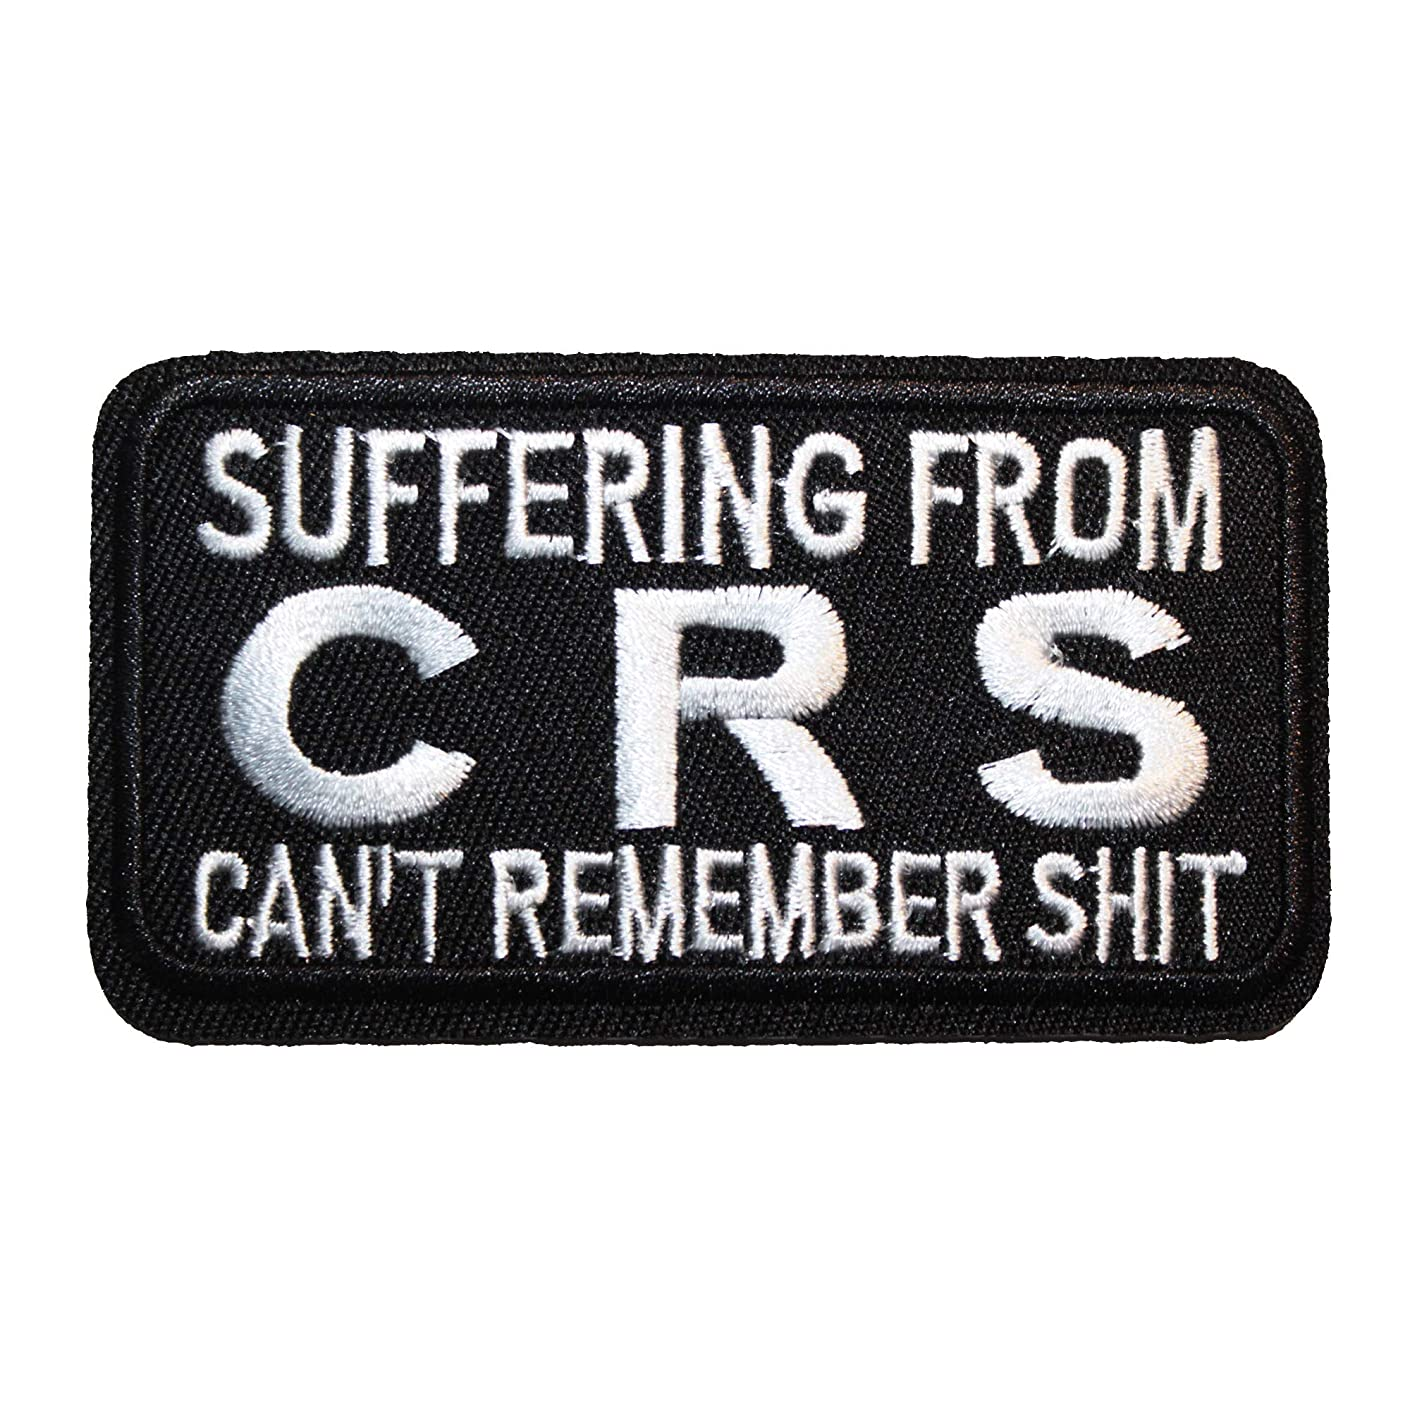 U-Sky Sew or Iron on Patches - Suffering from CRS Can't Remember Shit Patch